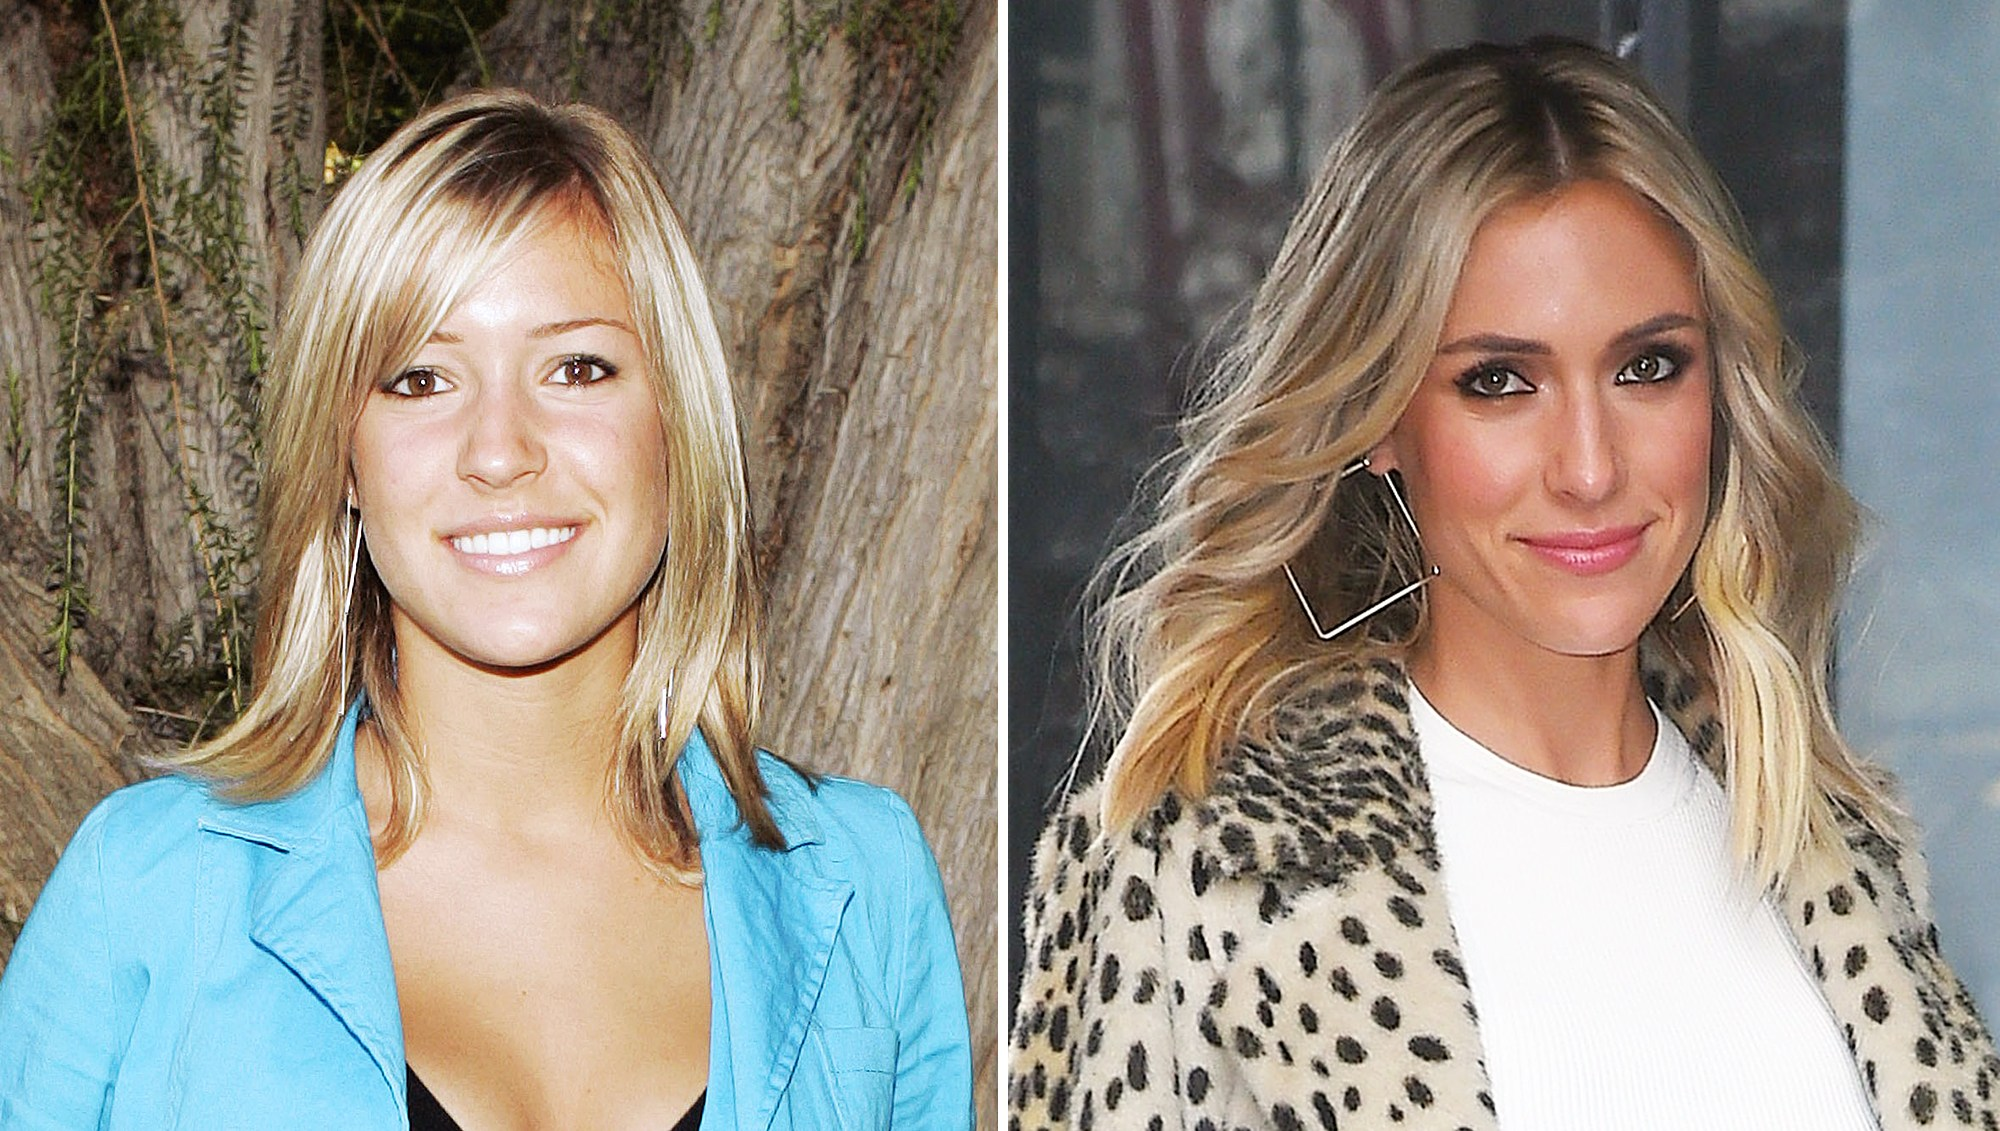 Kristin Cavallari Best Moments in Reality TV Laguna Beach The Hills